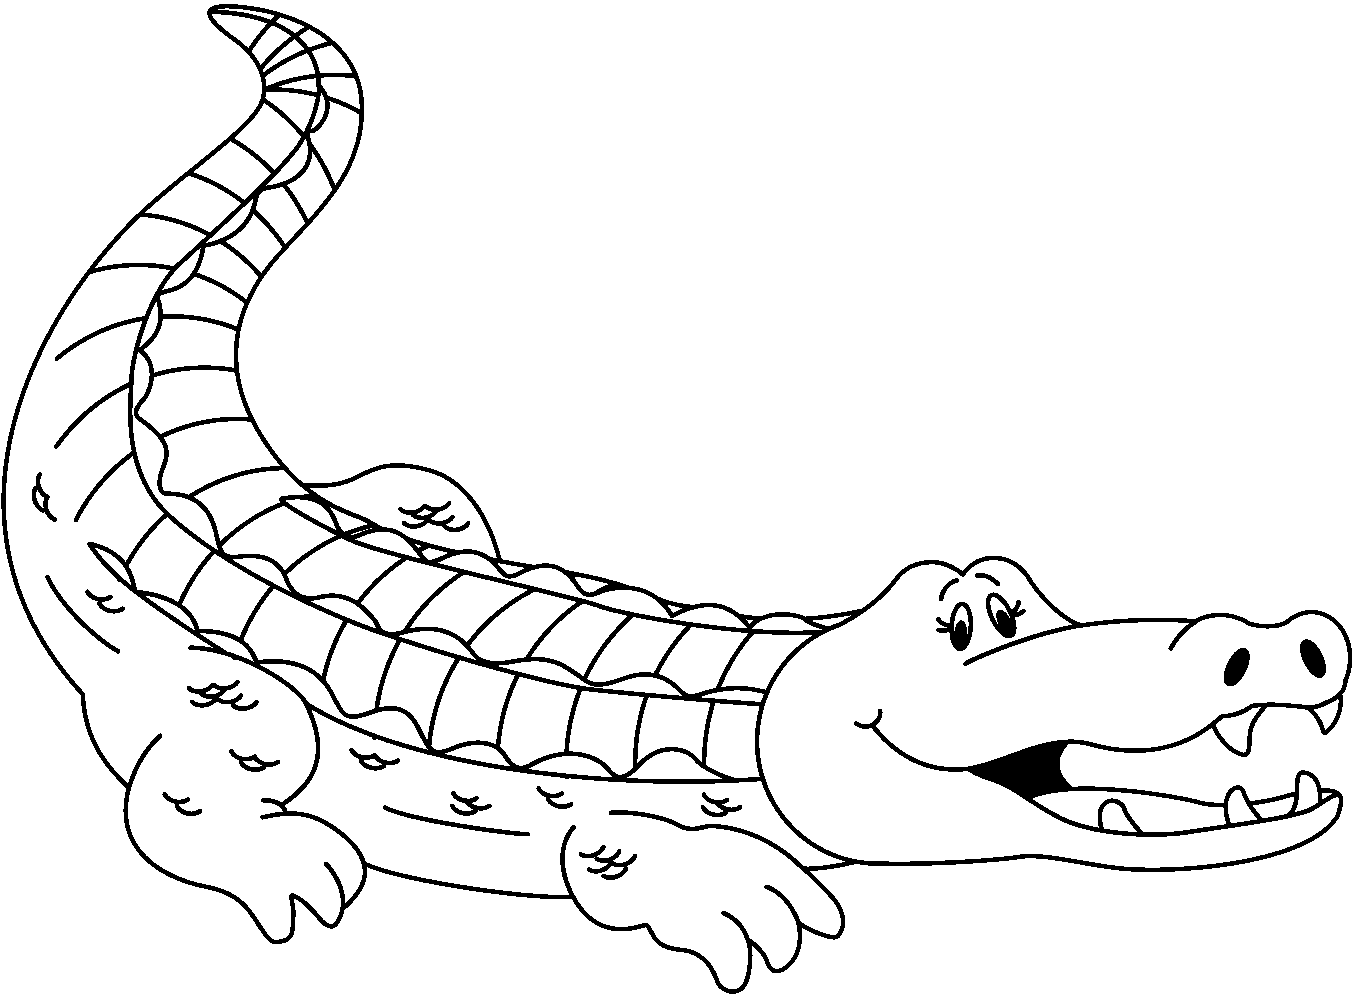 png crocodile black and white transparent crocodile black clip art alligators free clip art alligators free